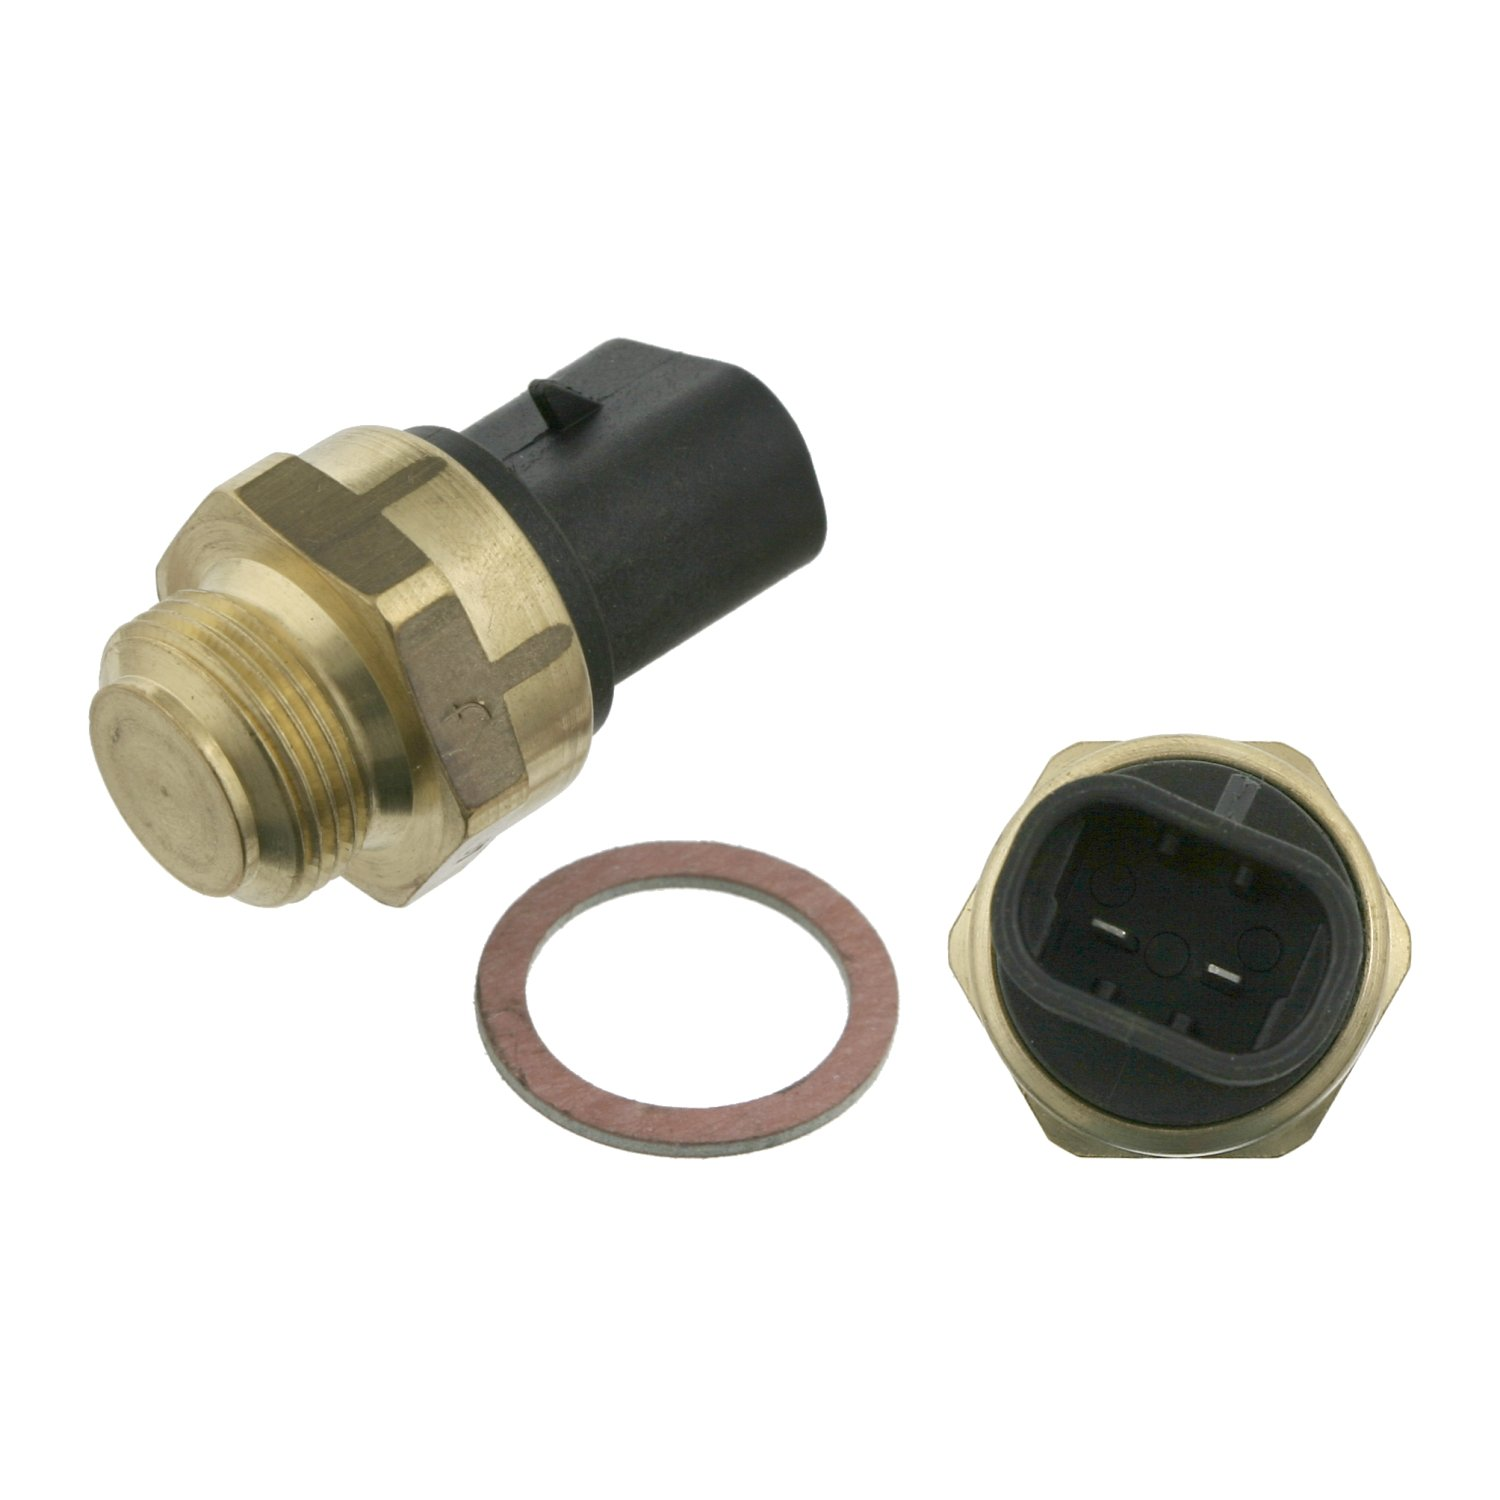 febi bilstein 04777 thermoswitch with seal ring - Pack of 1